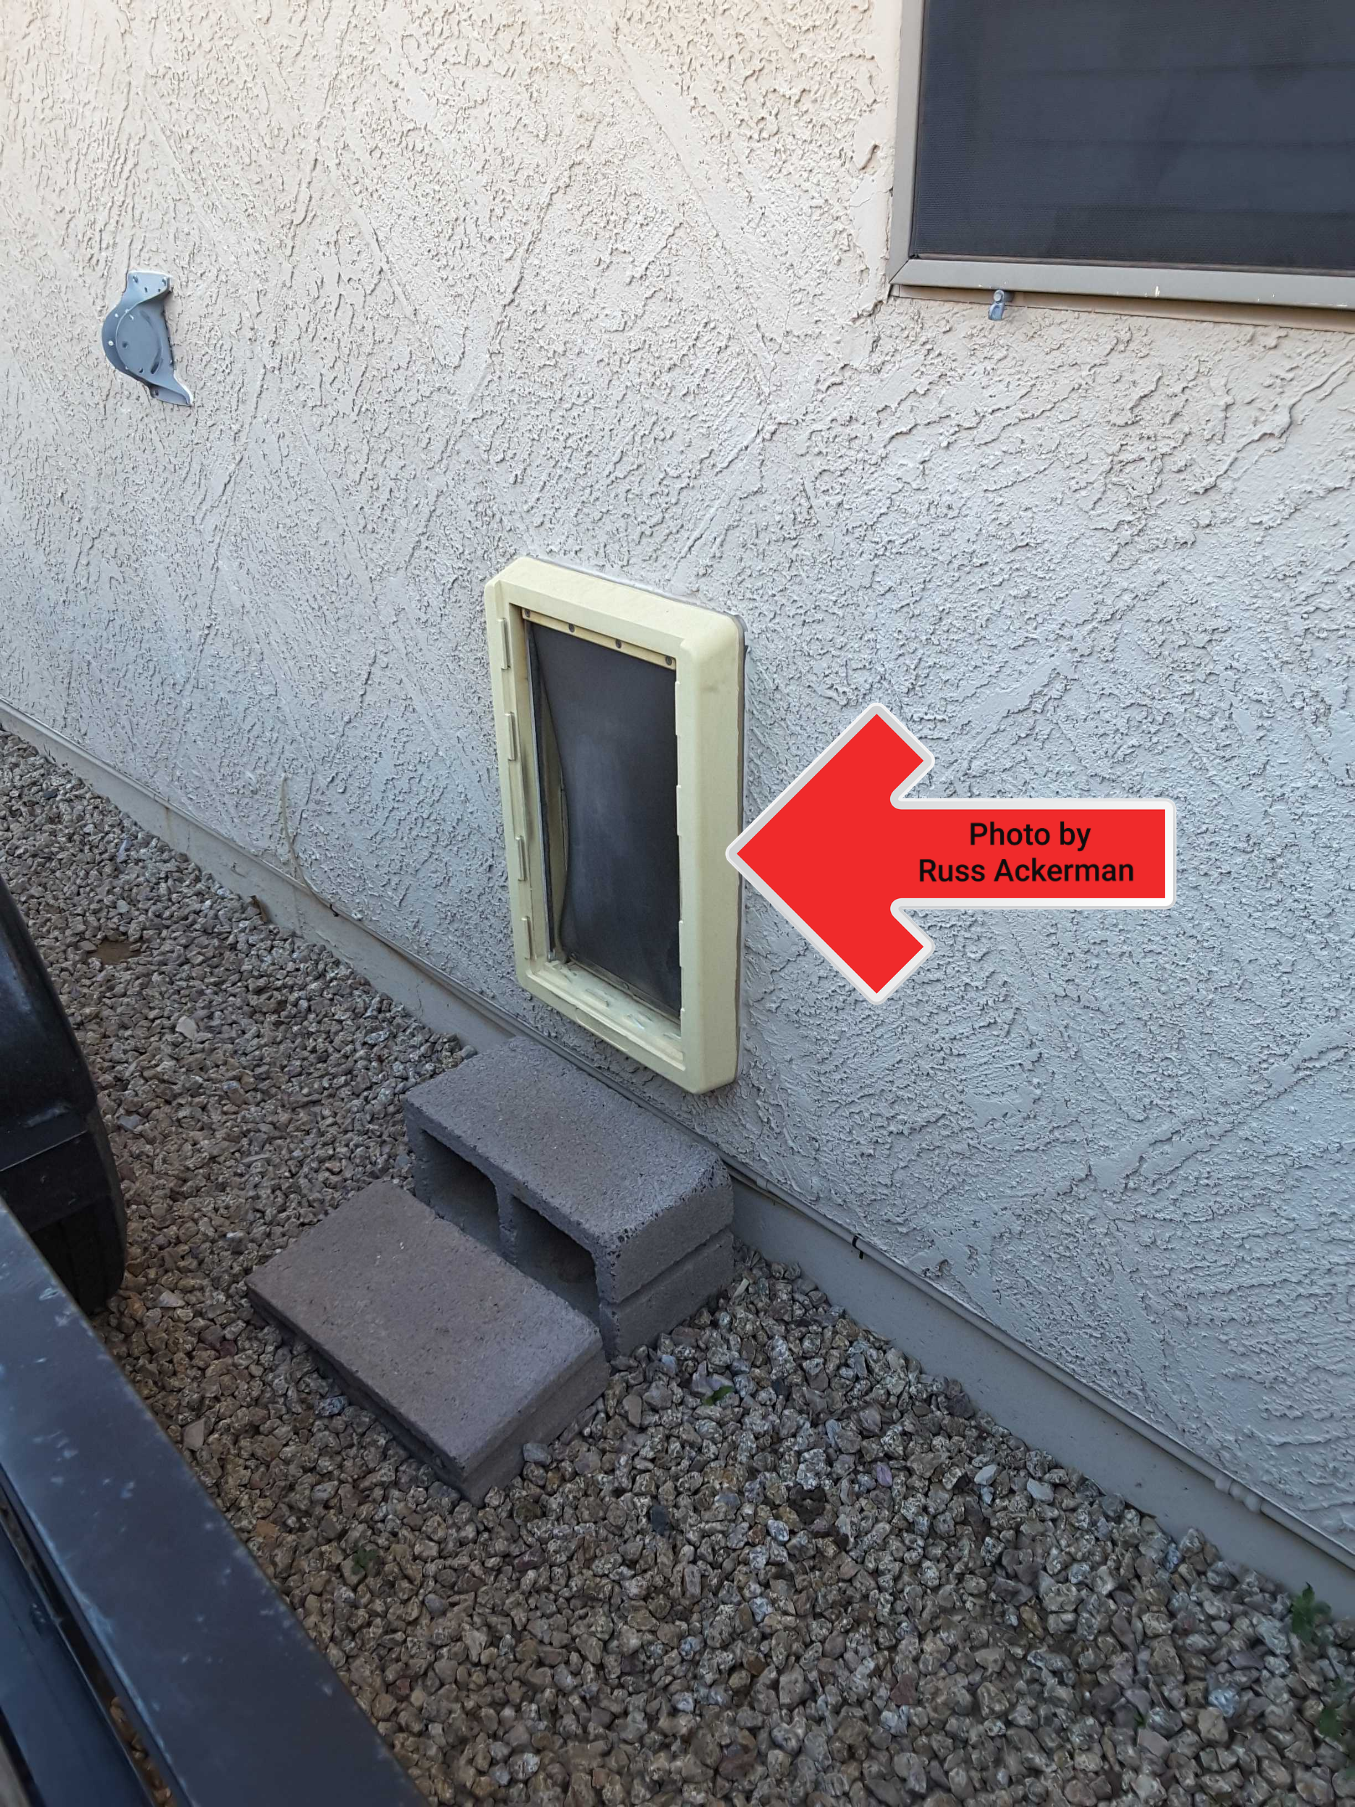 Large pet doors are a potential security issue, many homes are broken into by people entering thought a pet door. They should also not lead to a pool area.